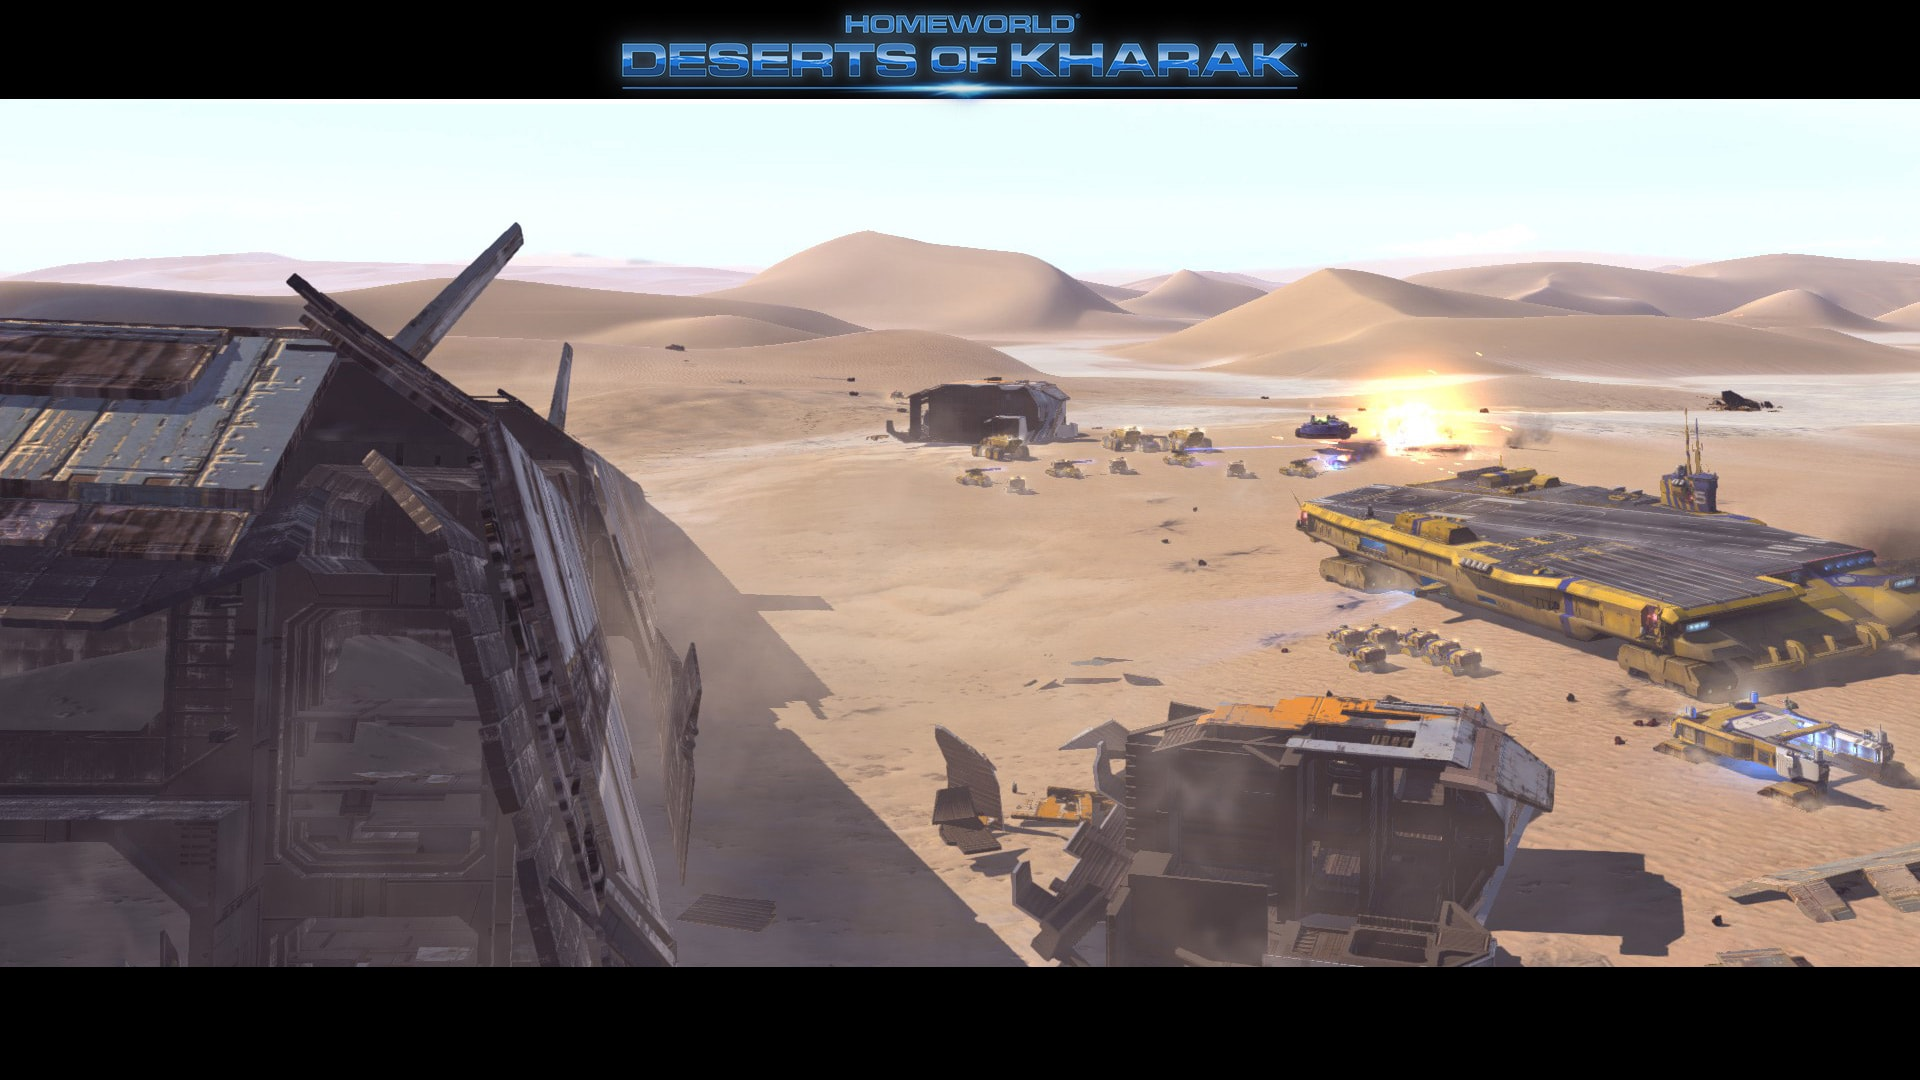 Homeworld: Deserts of Kharak Full hd wallpapers